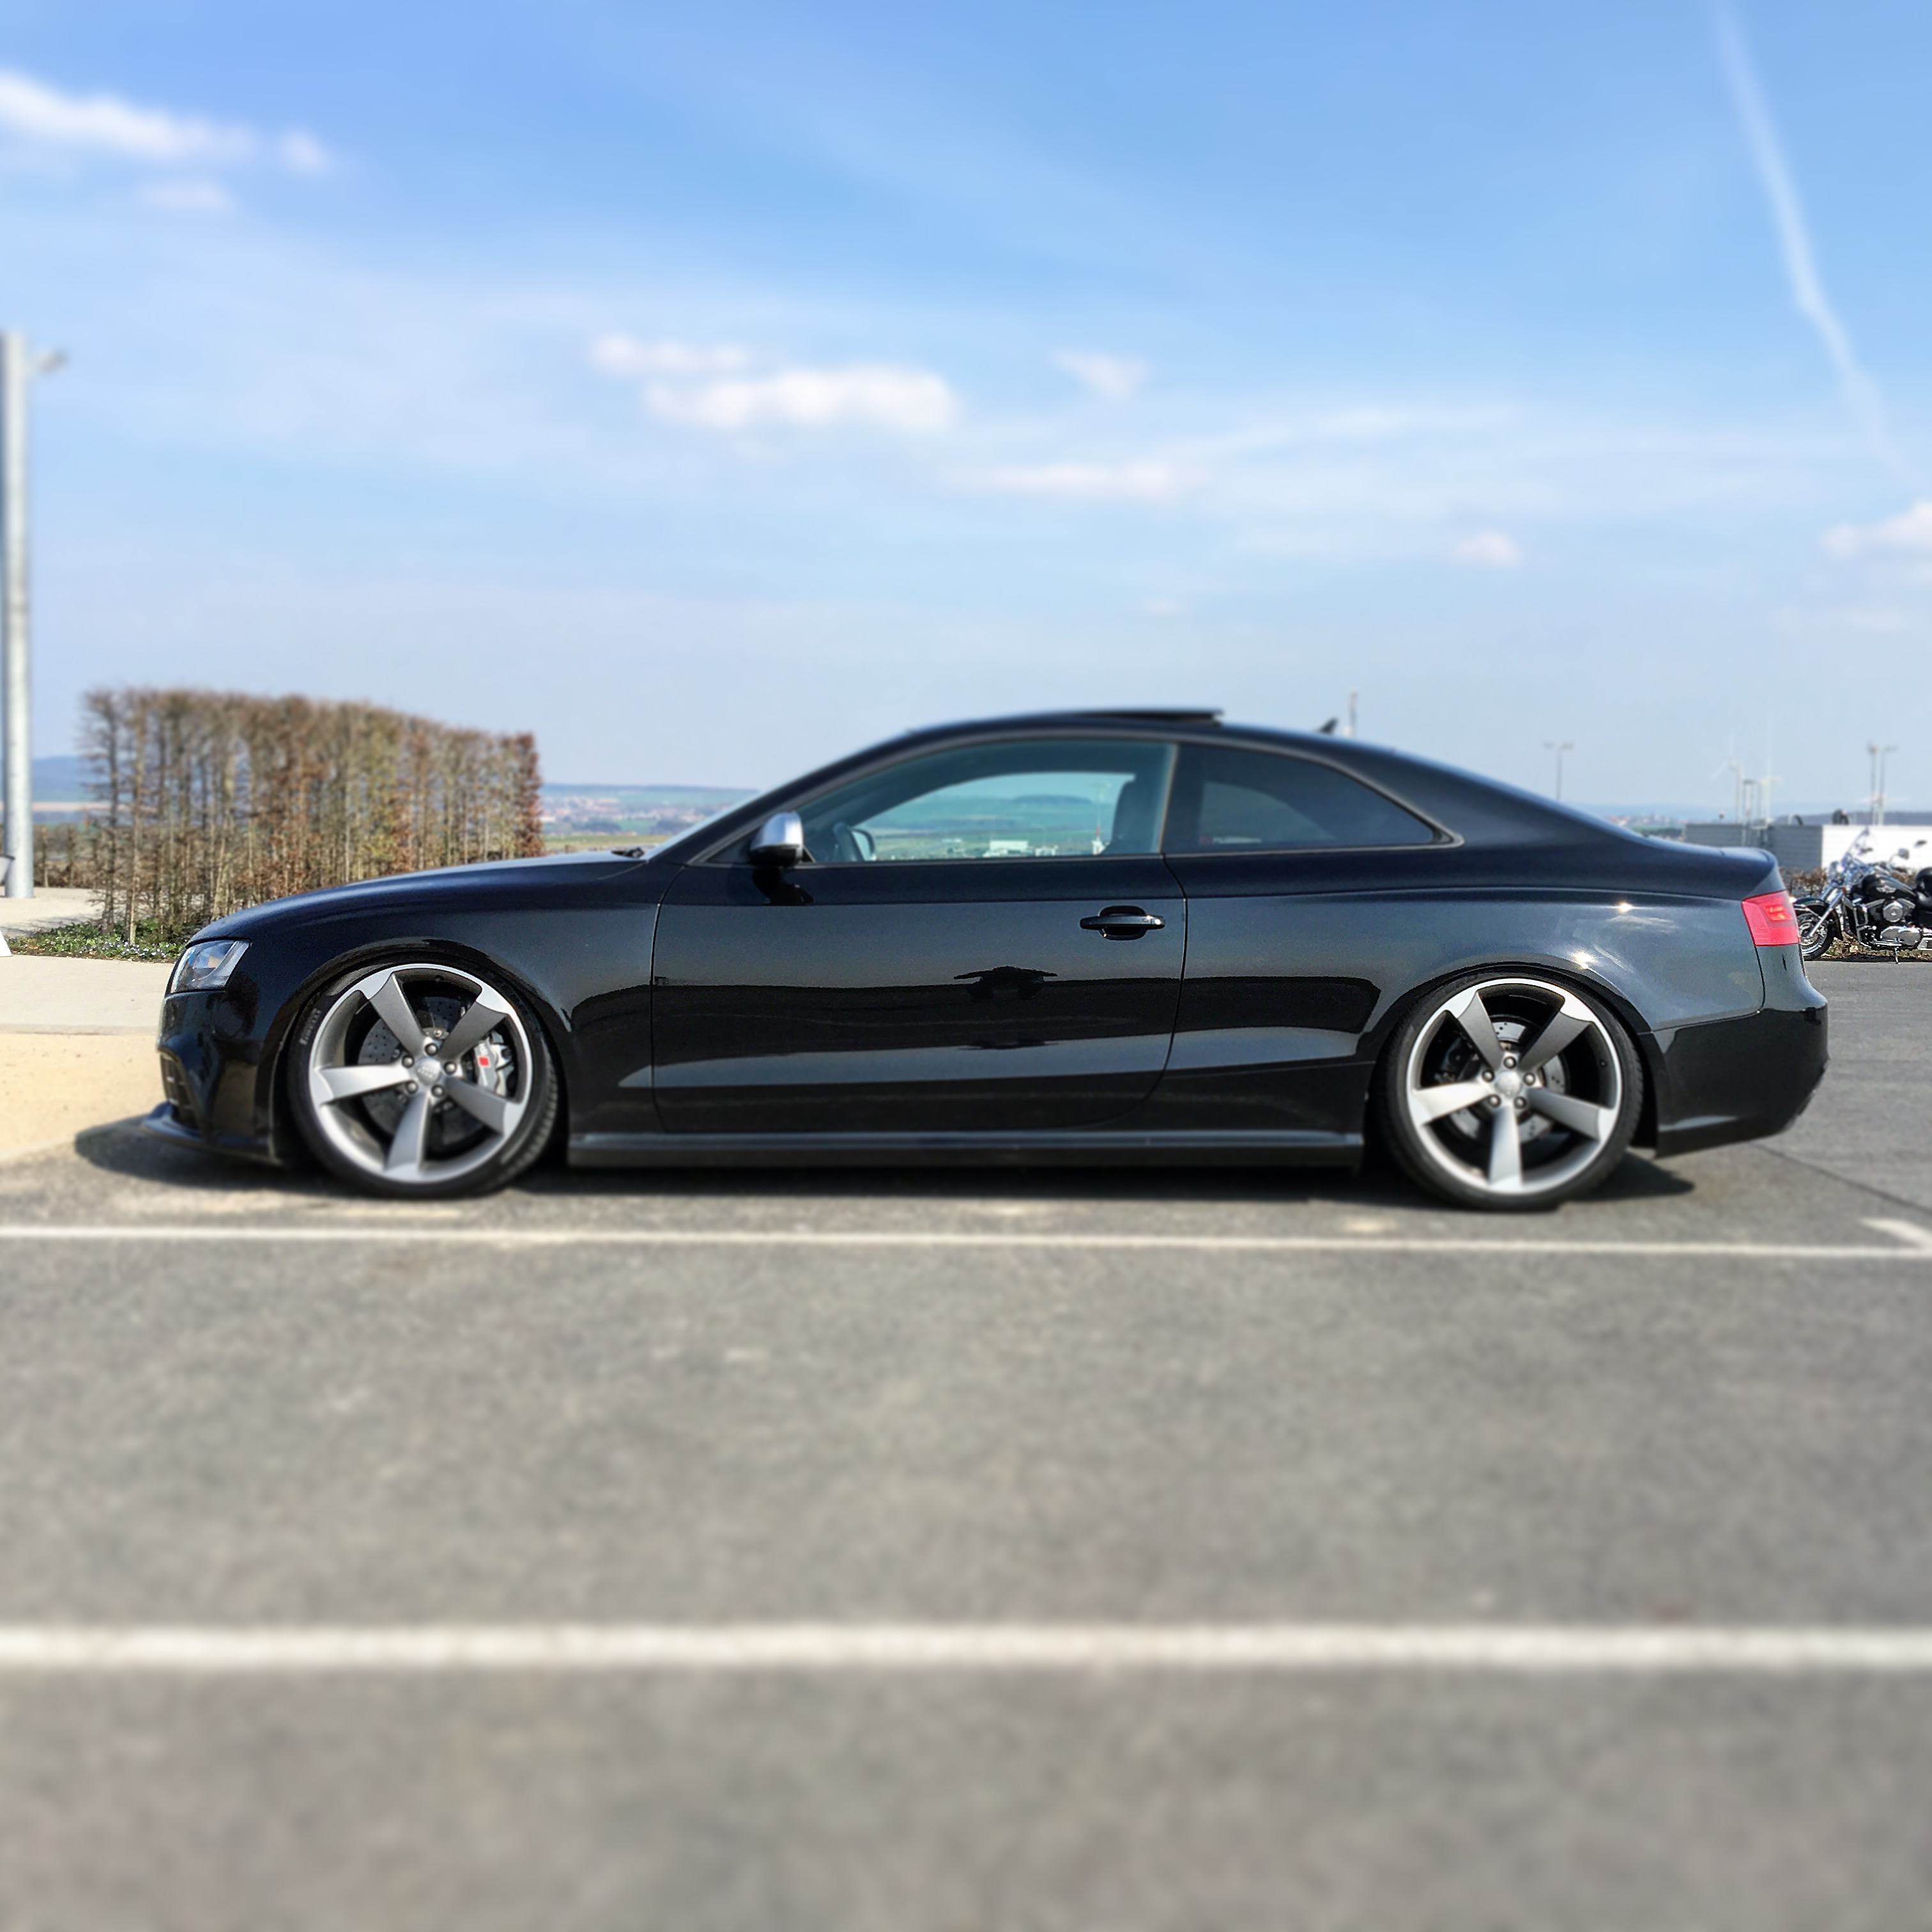 2011 Audi Rs5 For Sale: Audi RS5